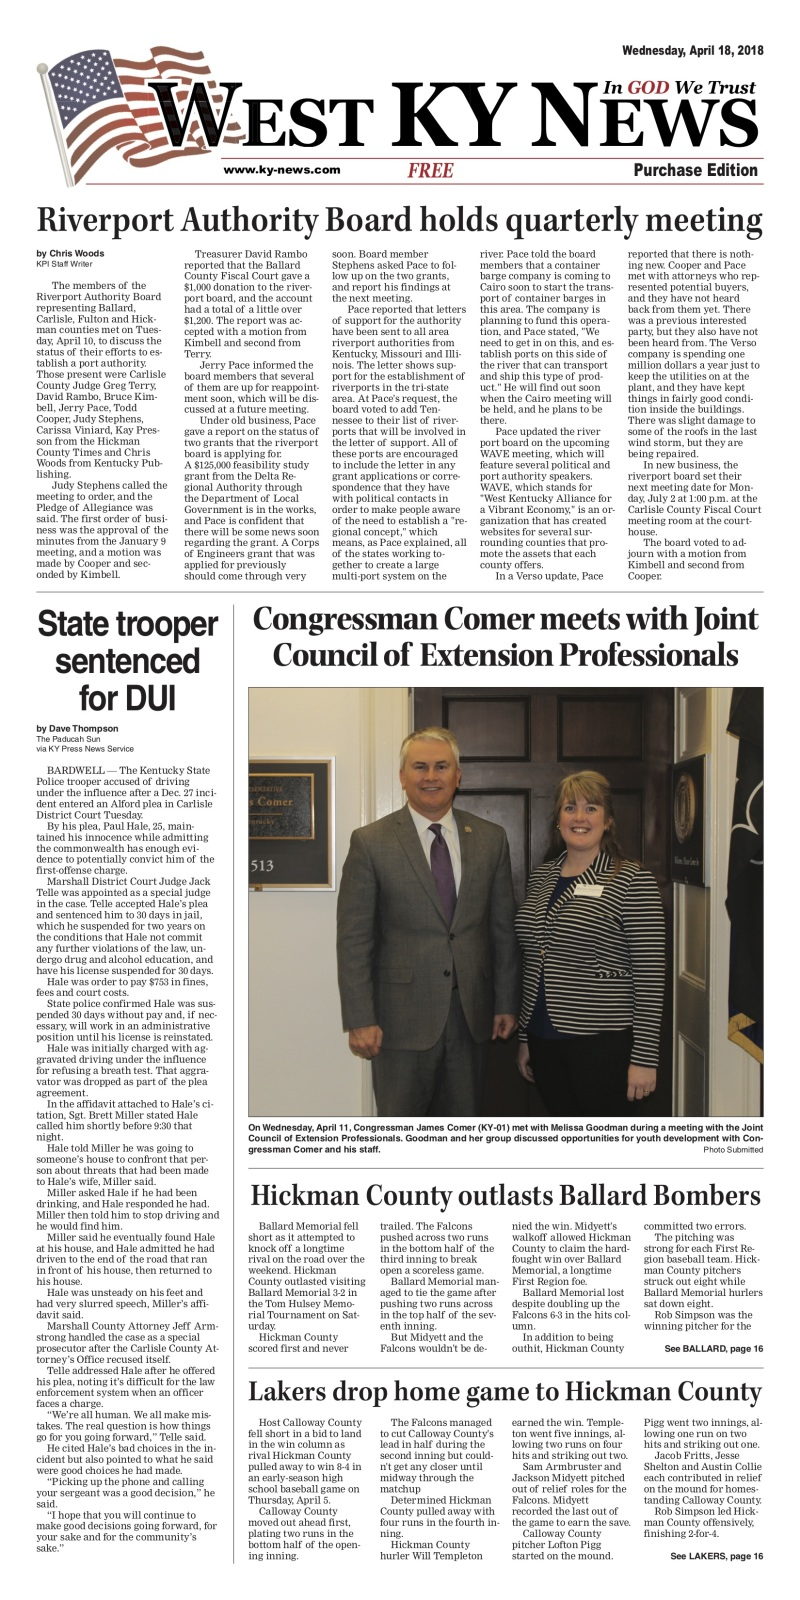 West KY News: Purchase Edition 4-18-18